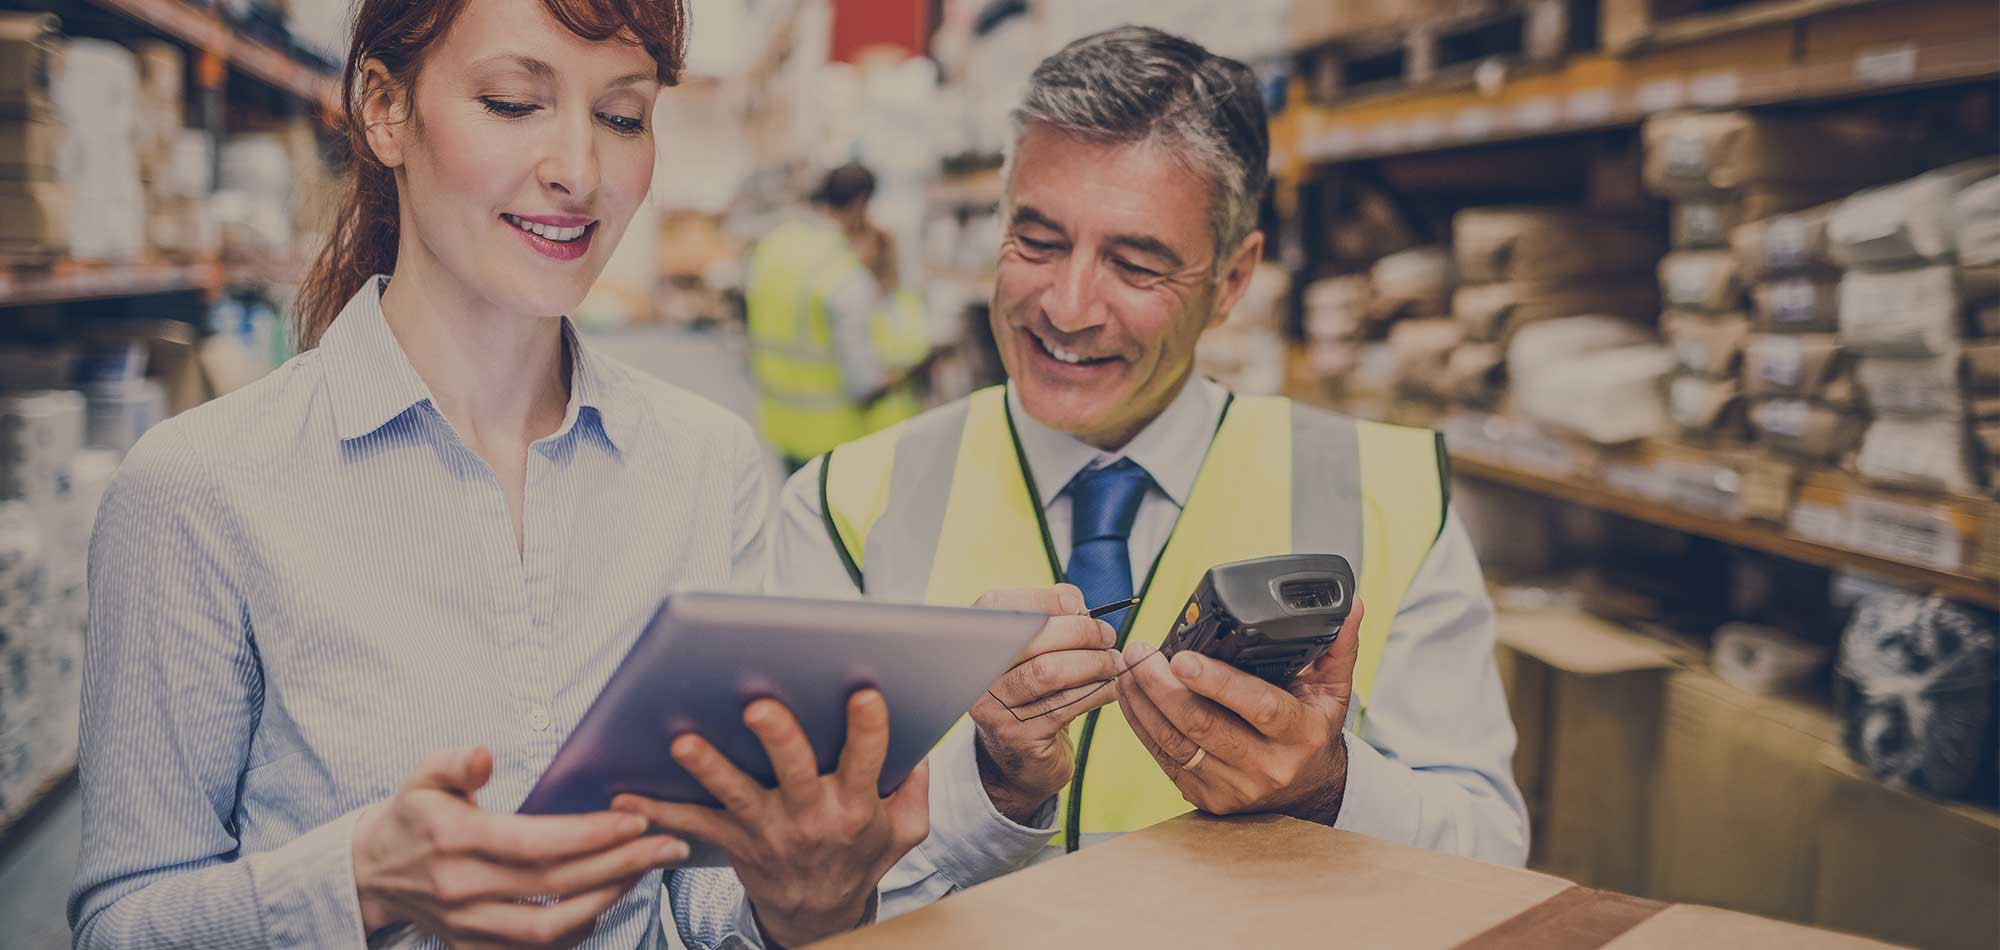 Purchasing an Inventory Management System? Ask Yourself This One Critical Question First